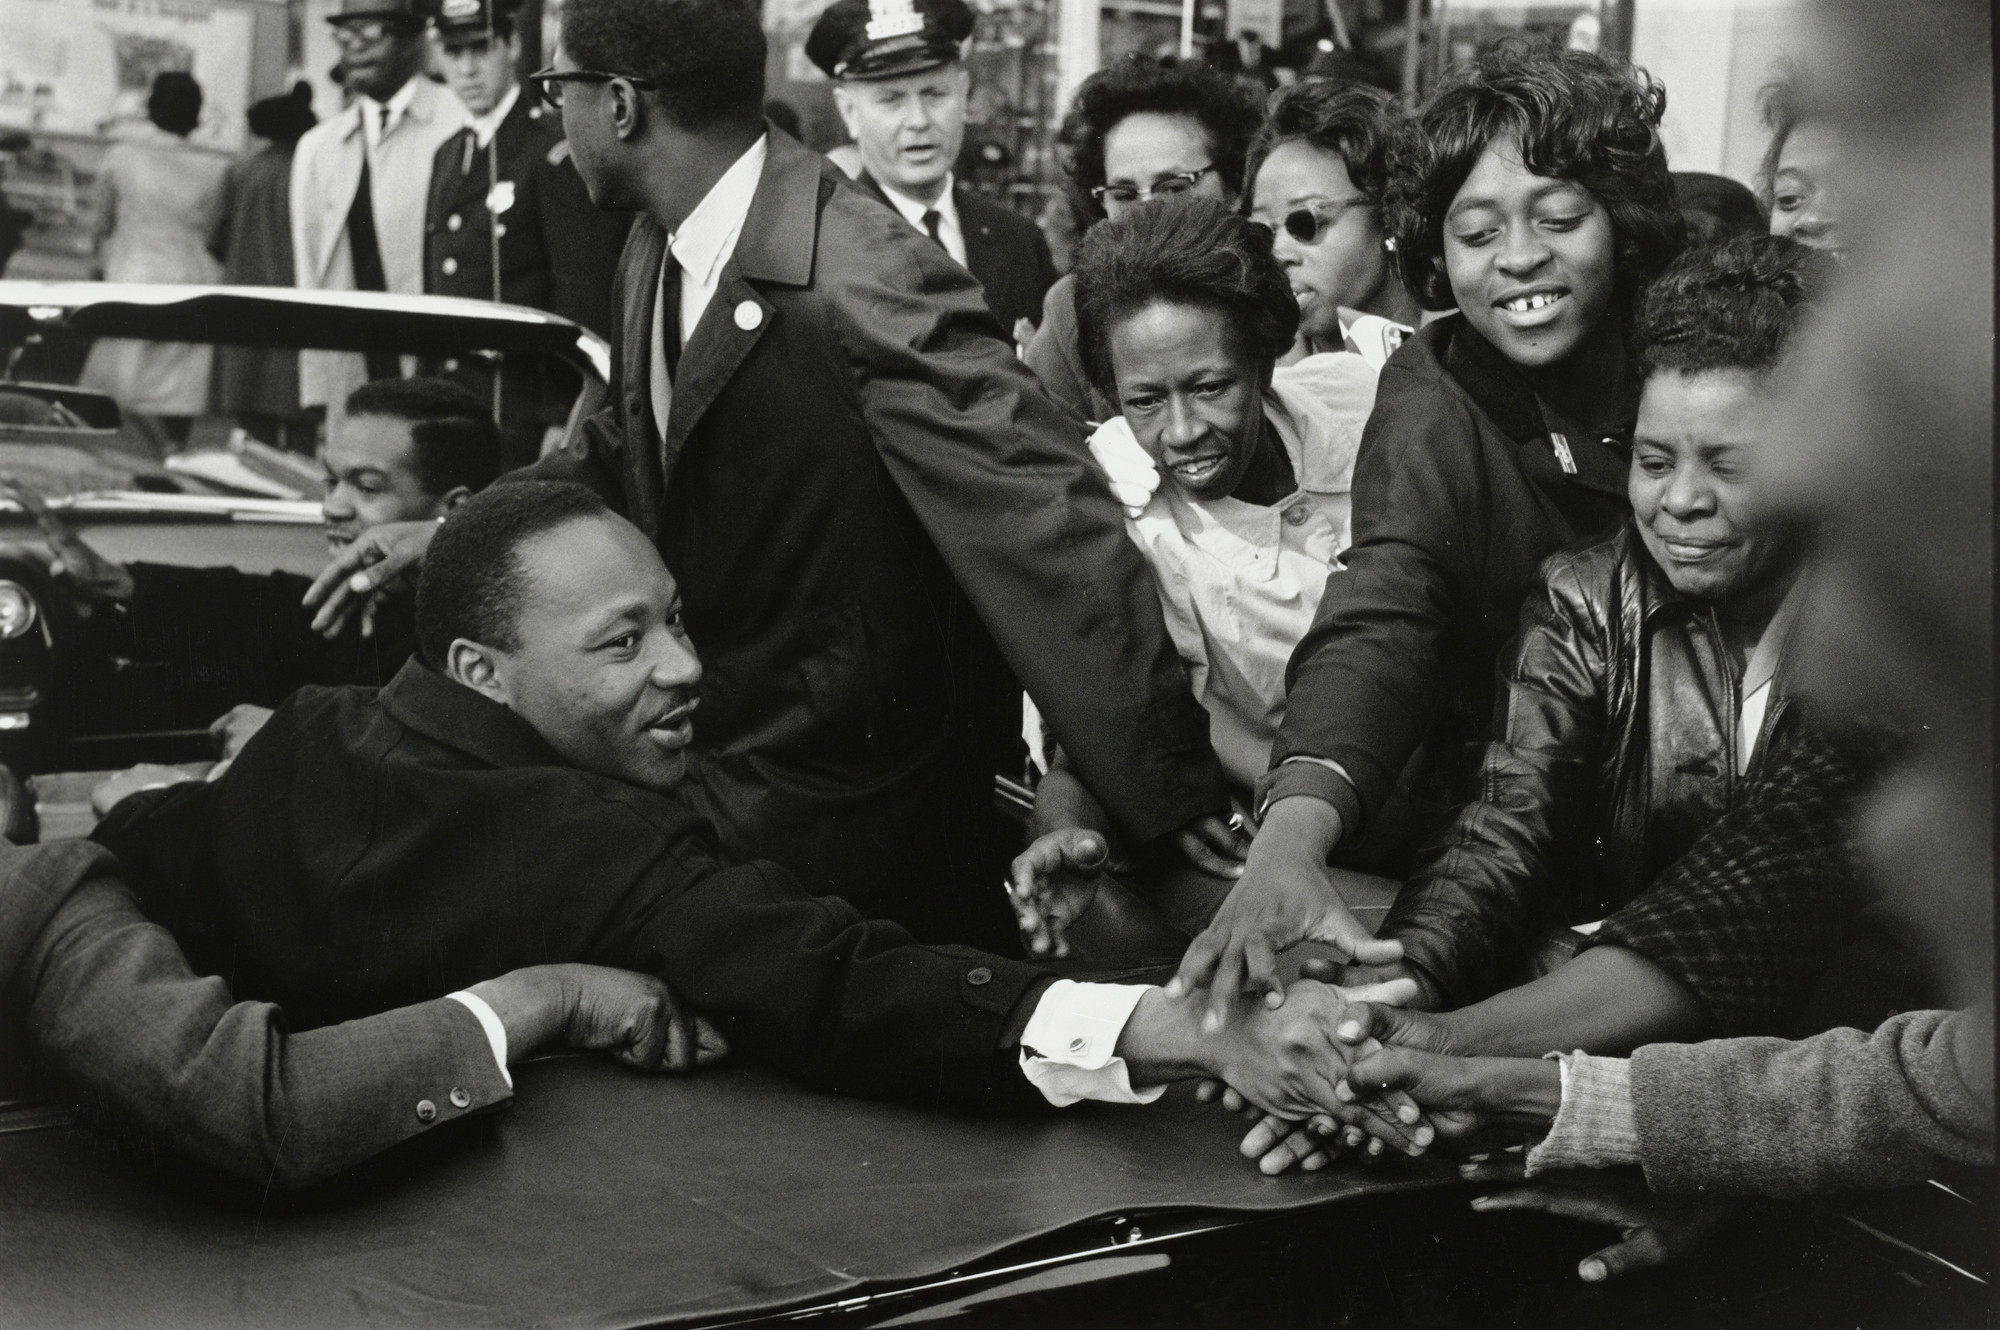 Leonard Freed. Baltimore, Maryland: Dr. Martin Luther King, Jr. being greeted upon his return to the United States after receiving the Nobel Peace Prize. October 31, 1964